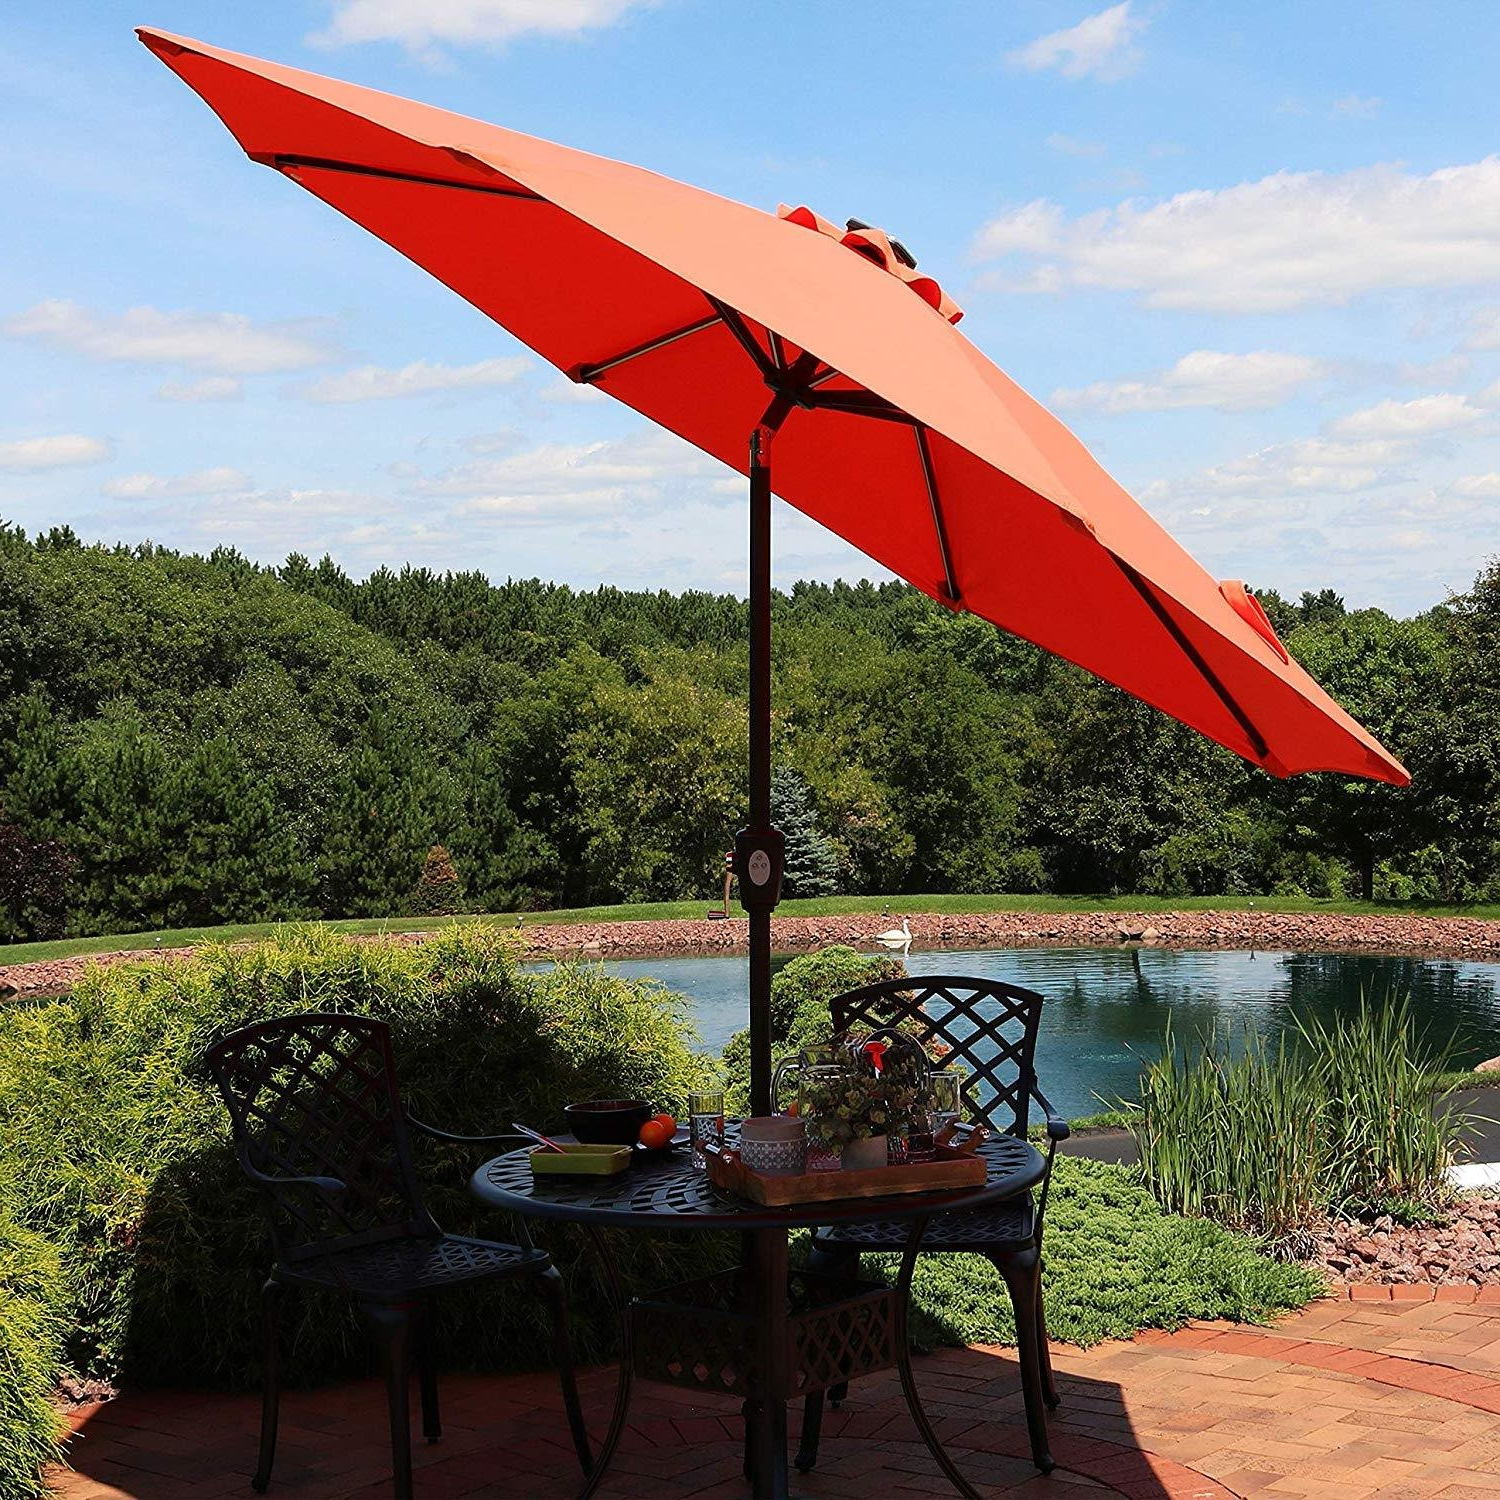 Ludie Aluminum 9' Market Umbrella Intended For Popular Gainsborough Market Umbrellas (View 8 of 20)